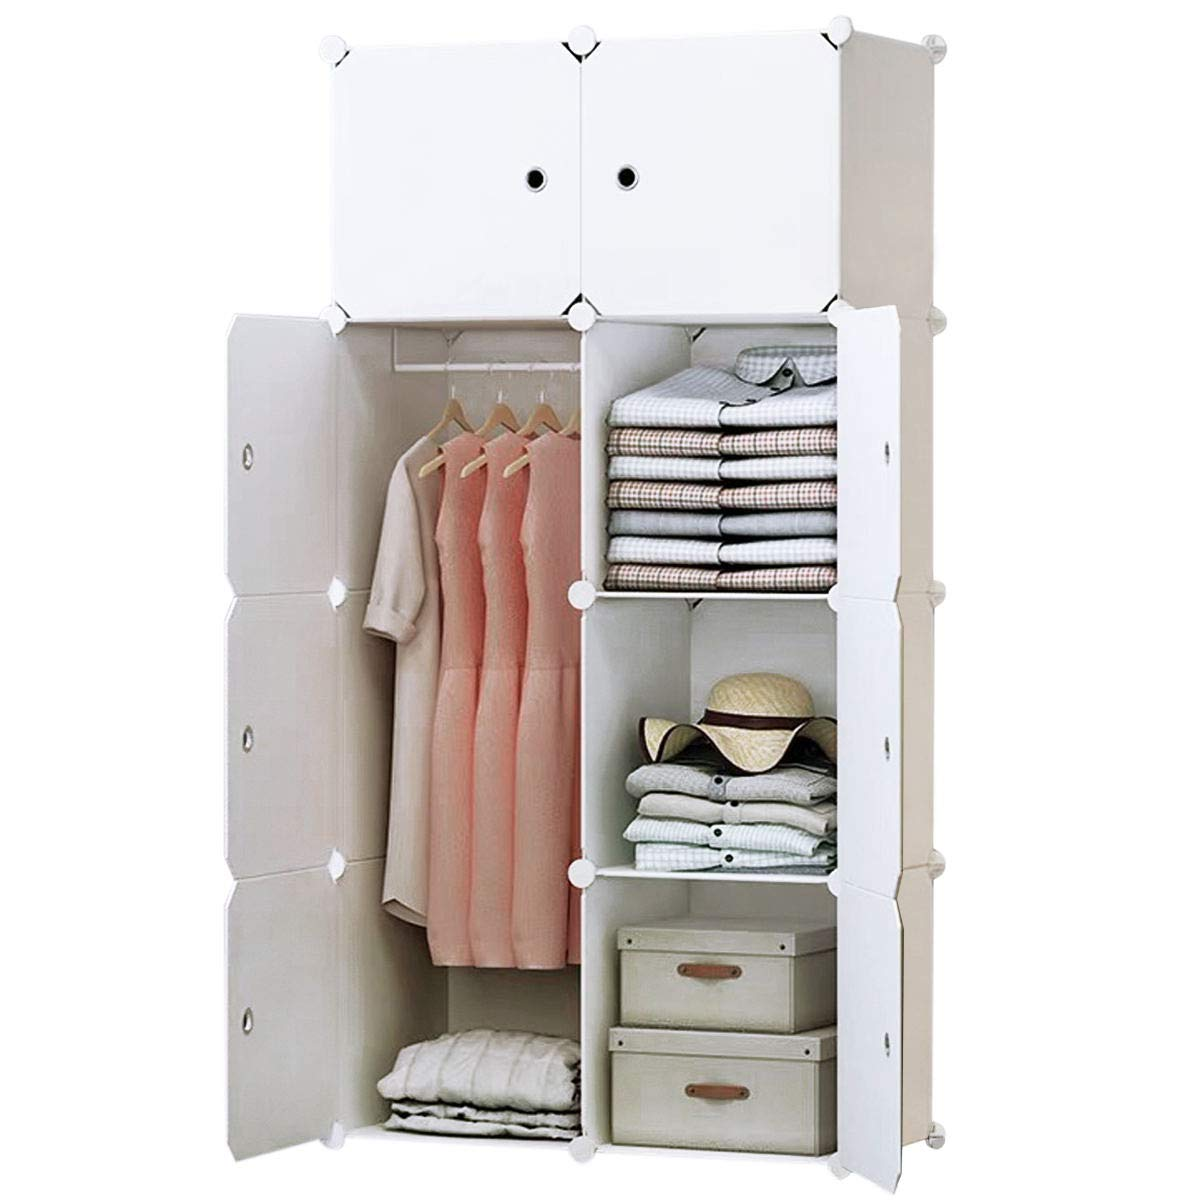 BRIAN /& DANY 8-Cube Clothes Closet Modular Storage Organizer Deeper Cubes for Larger Space Plastic Wardrobe with Doors /& 1 Hangers